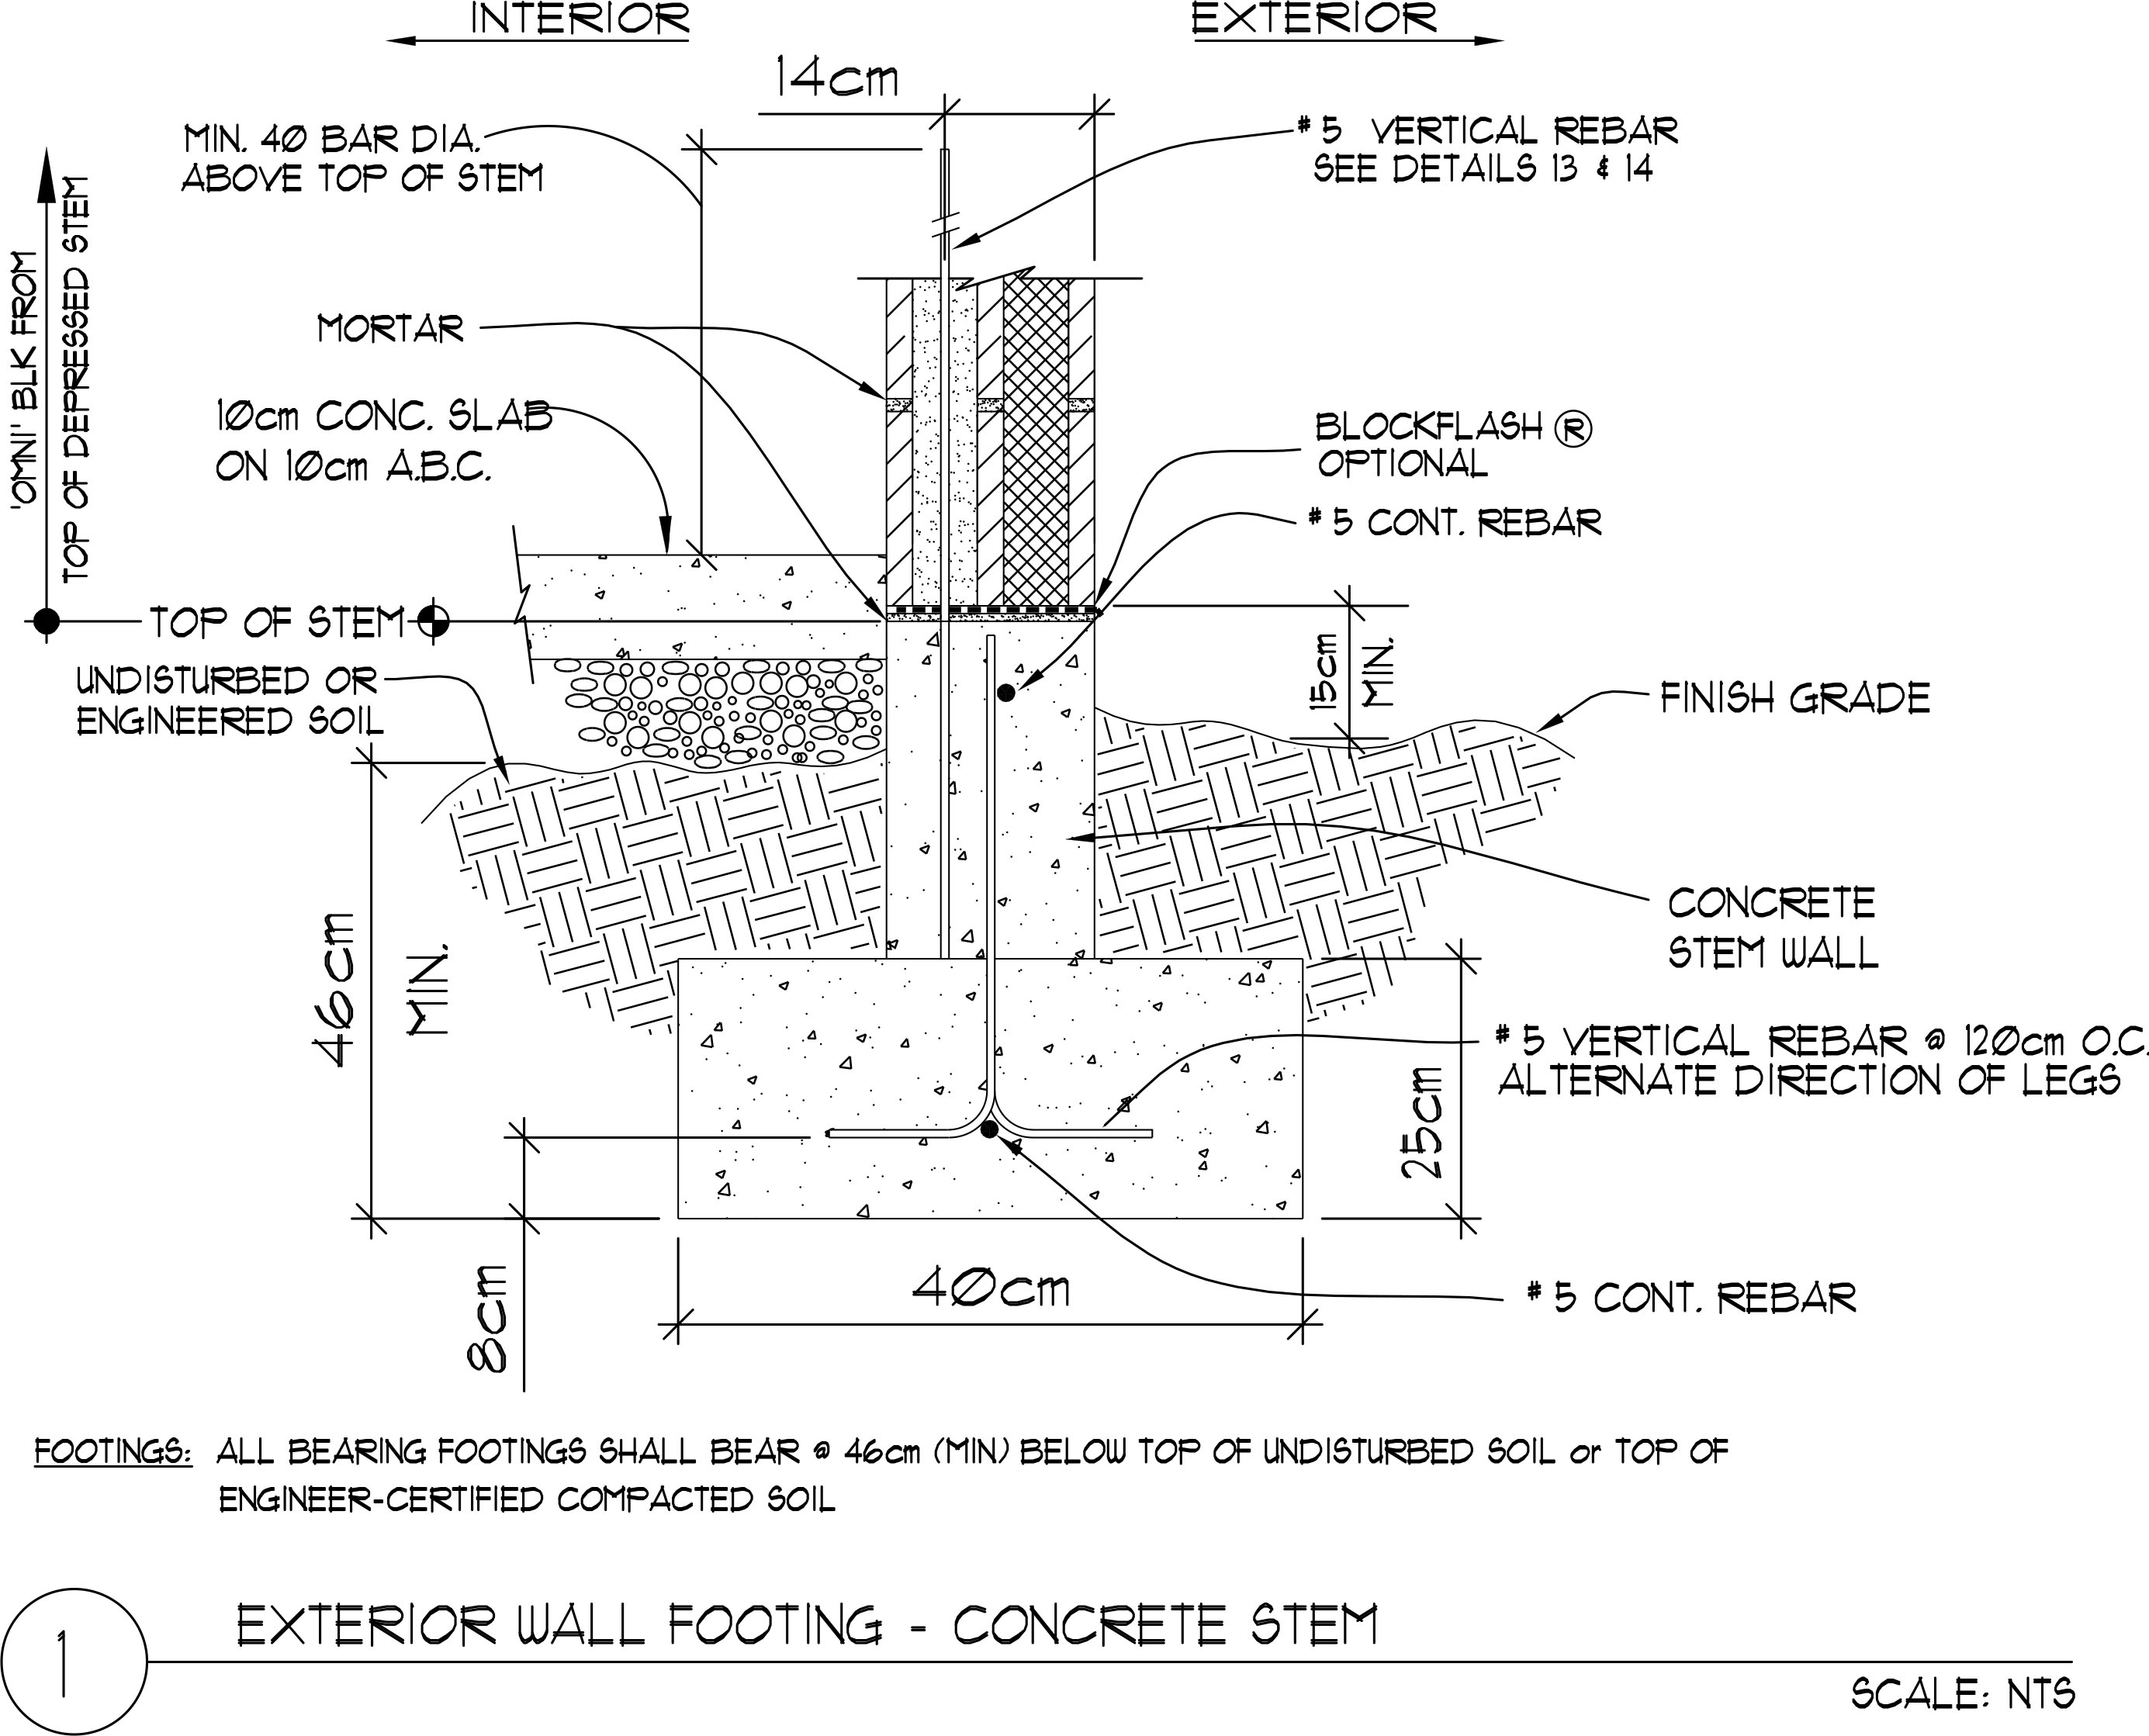 Exterior Wall Footing Concrete Stem 20 X 20 X 40 Omniblock